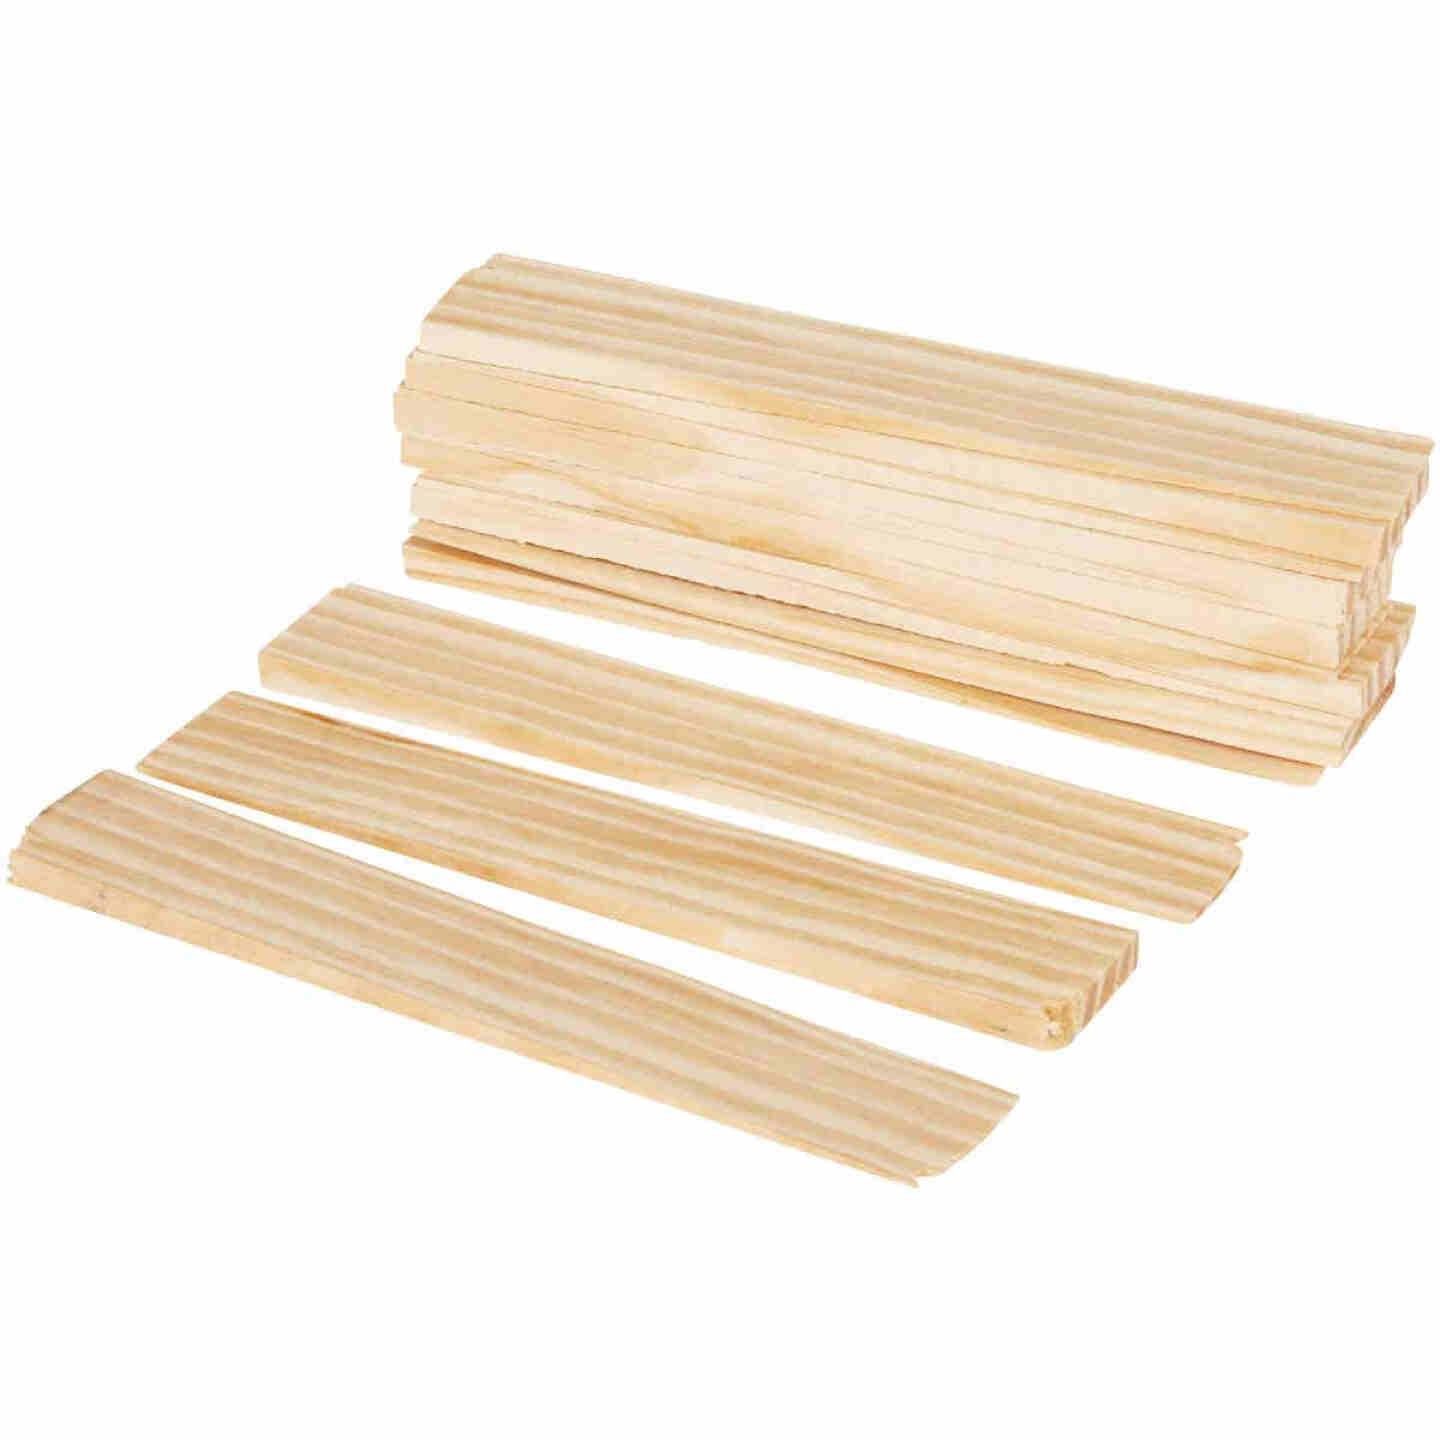 Nelson Wood Shims 8 In. L Wood Shim (12-Count) Image 1